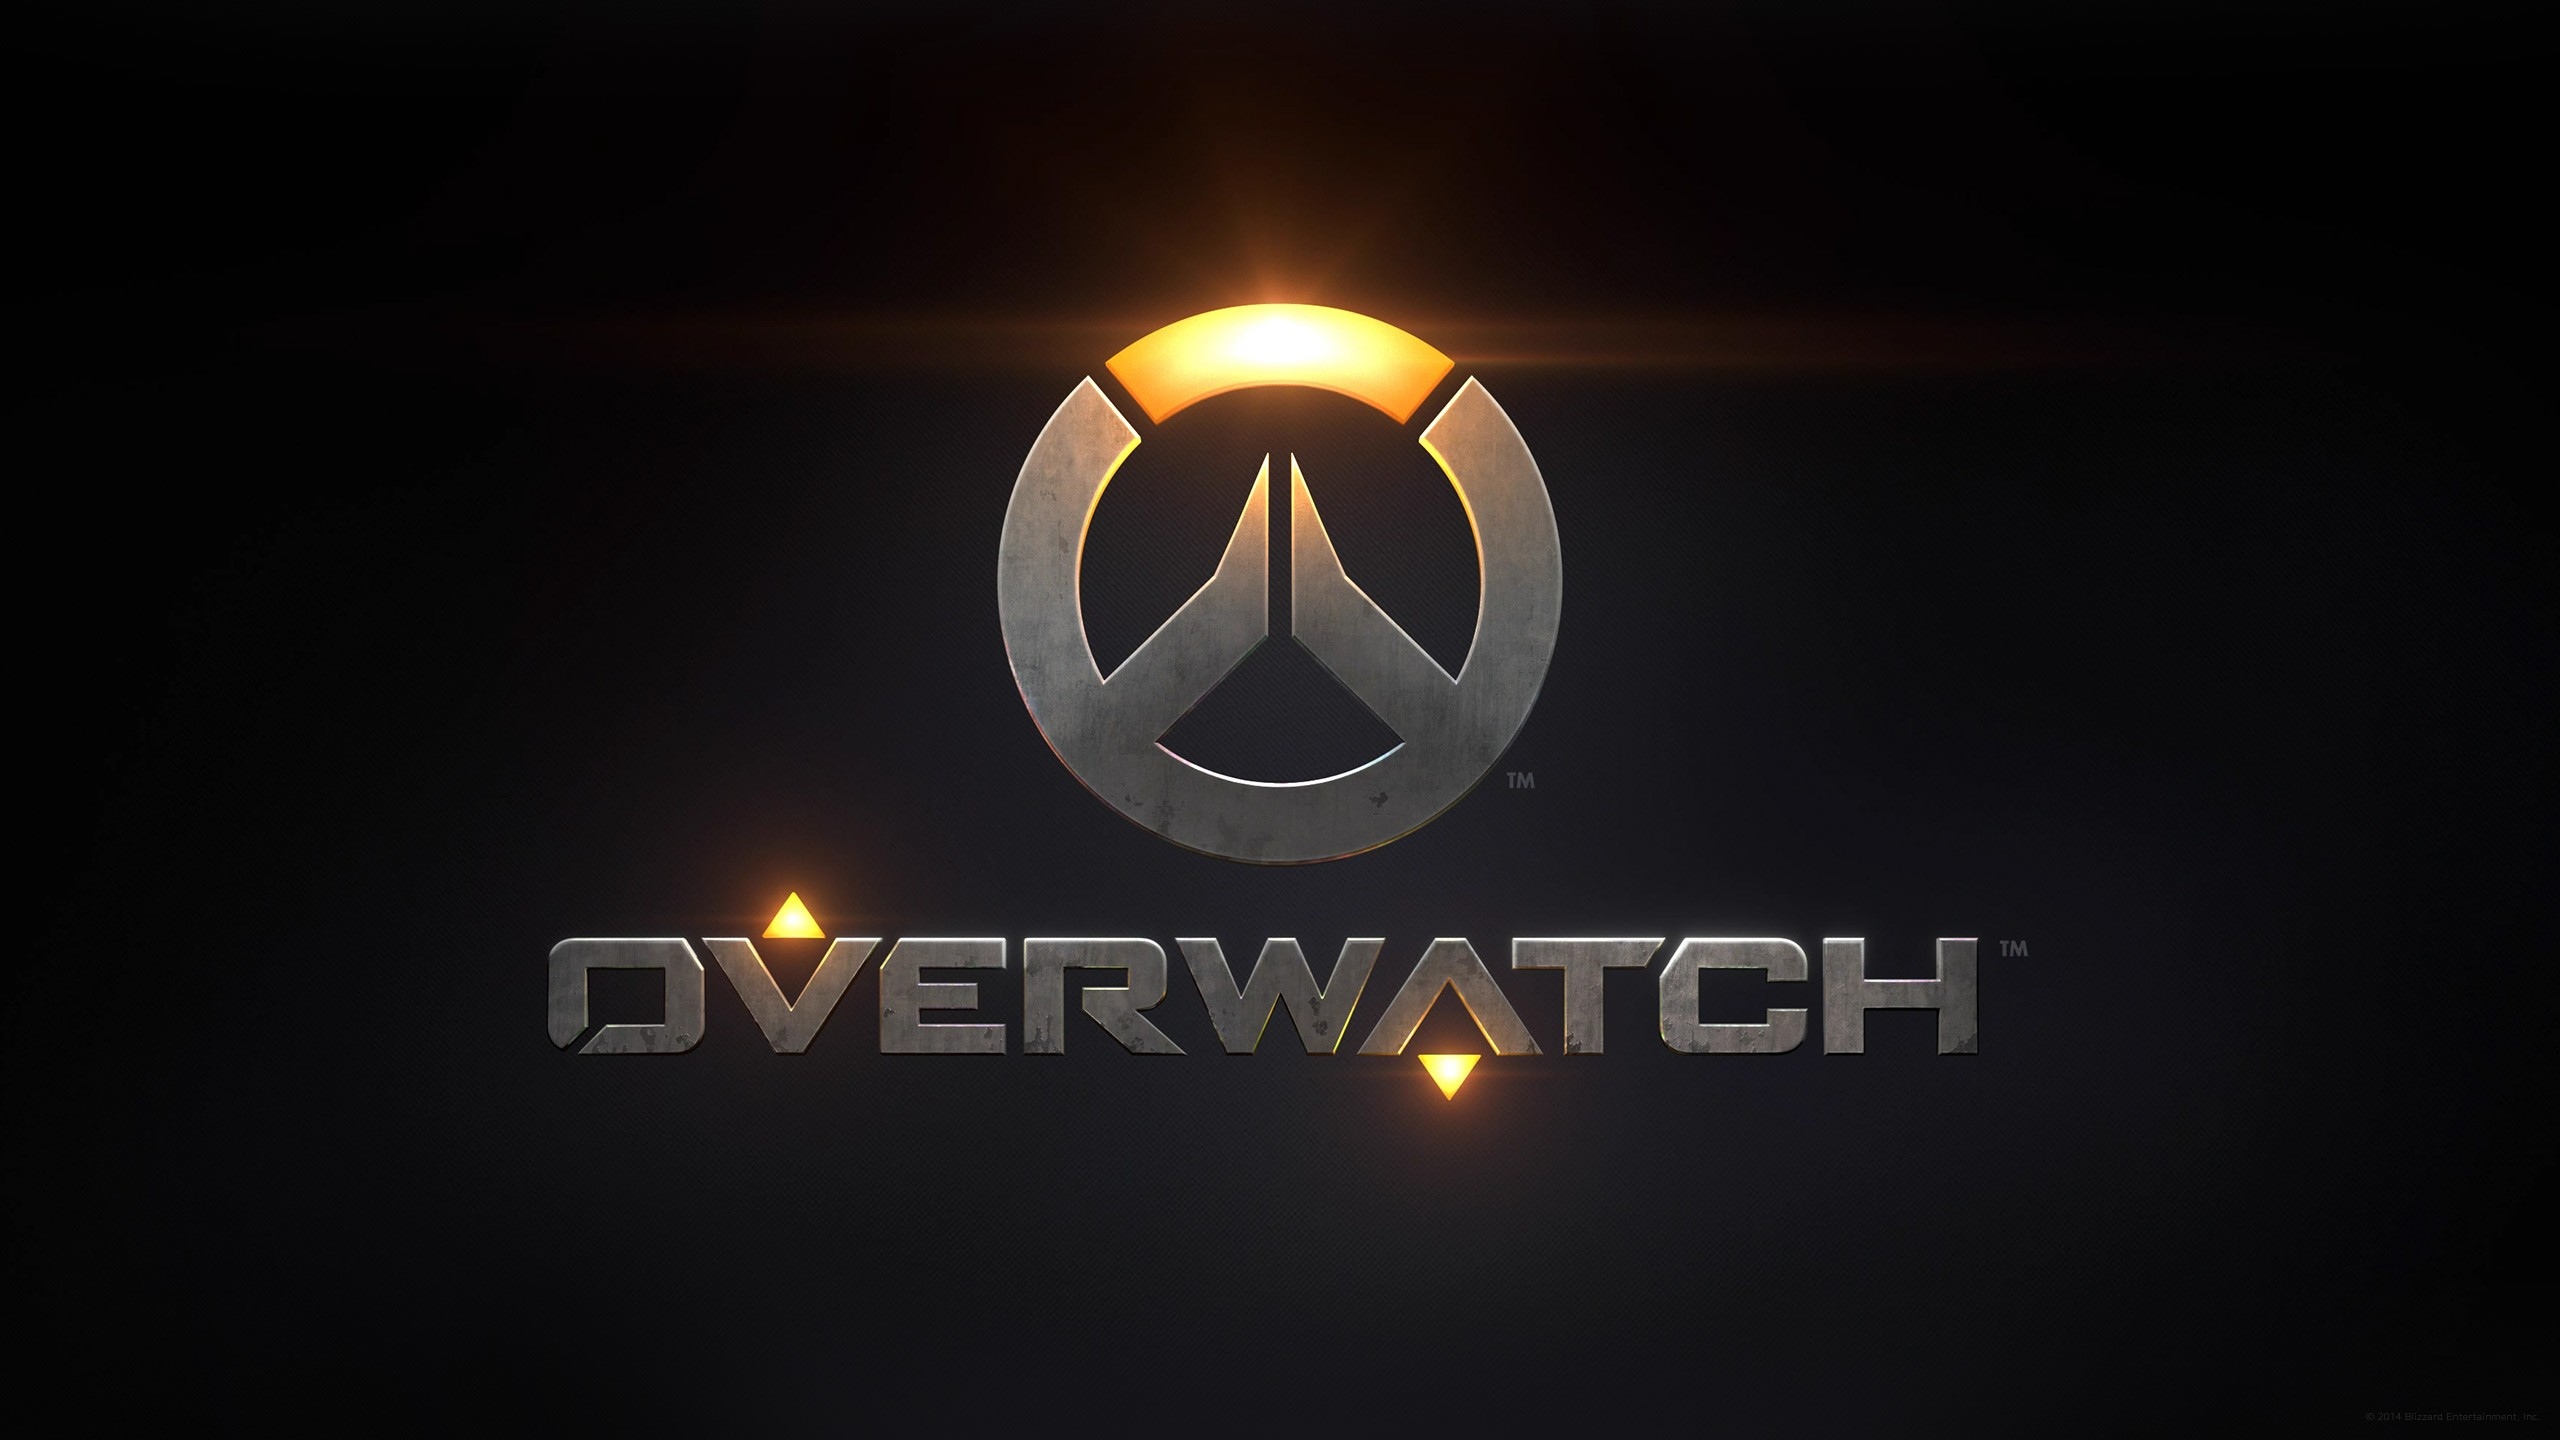 overwatch logo wallpaper download free cool hd wallpapers for